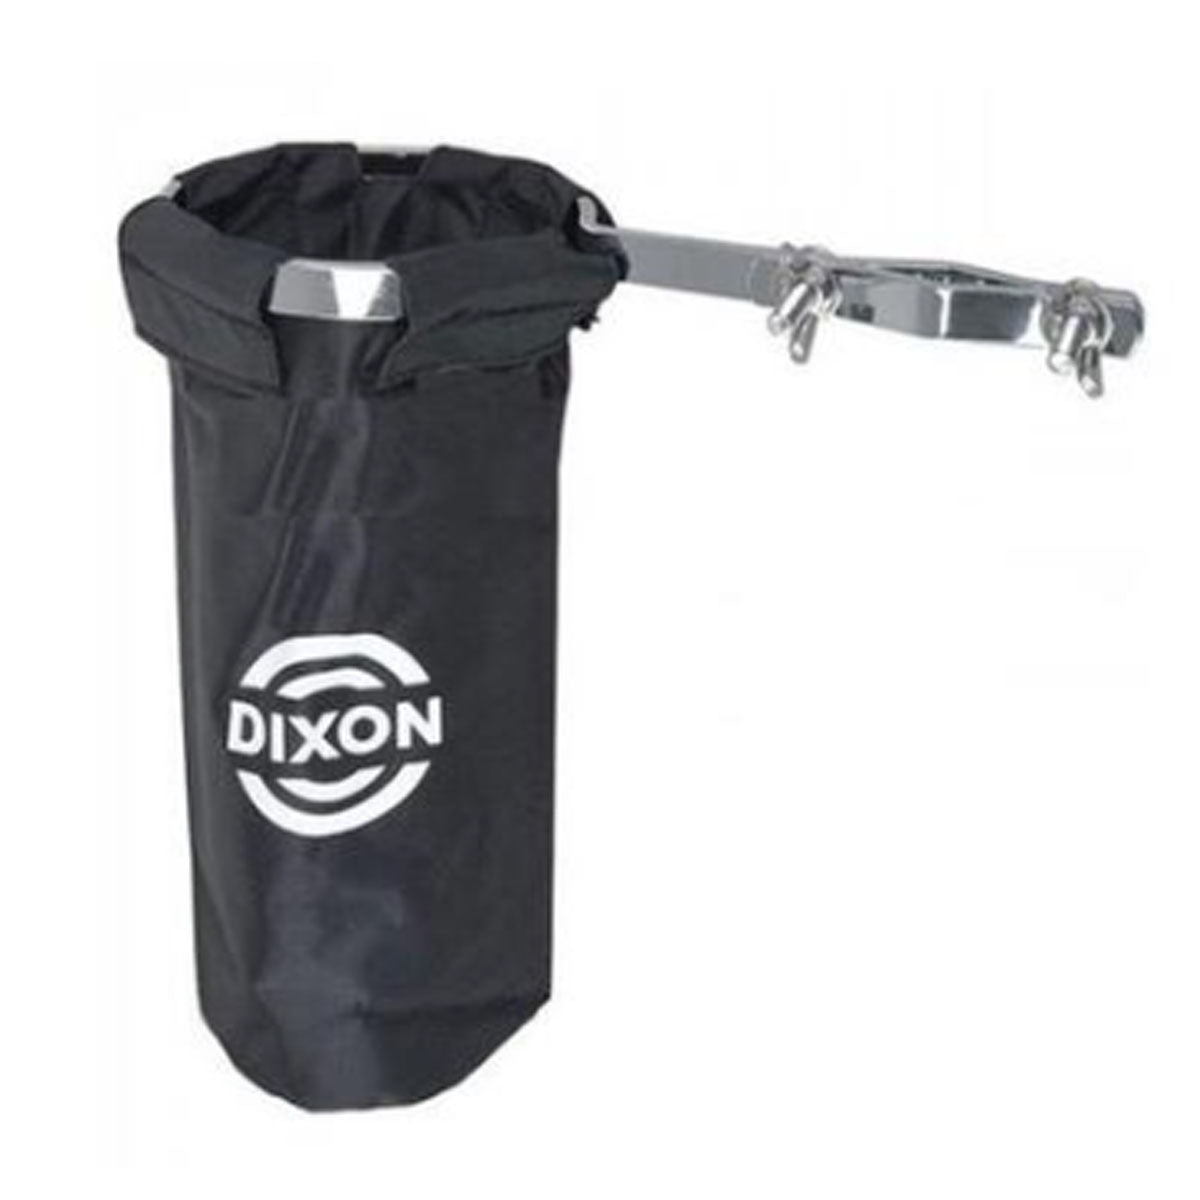 Dixon Drum Stick Holder - PXAHHP